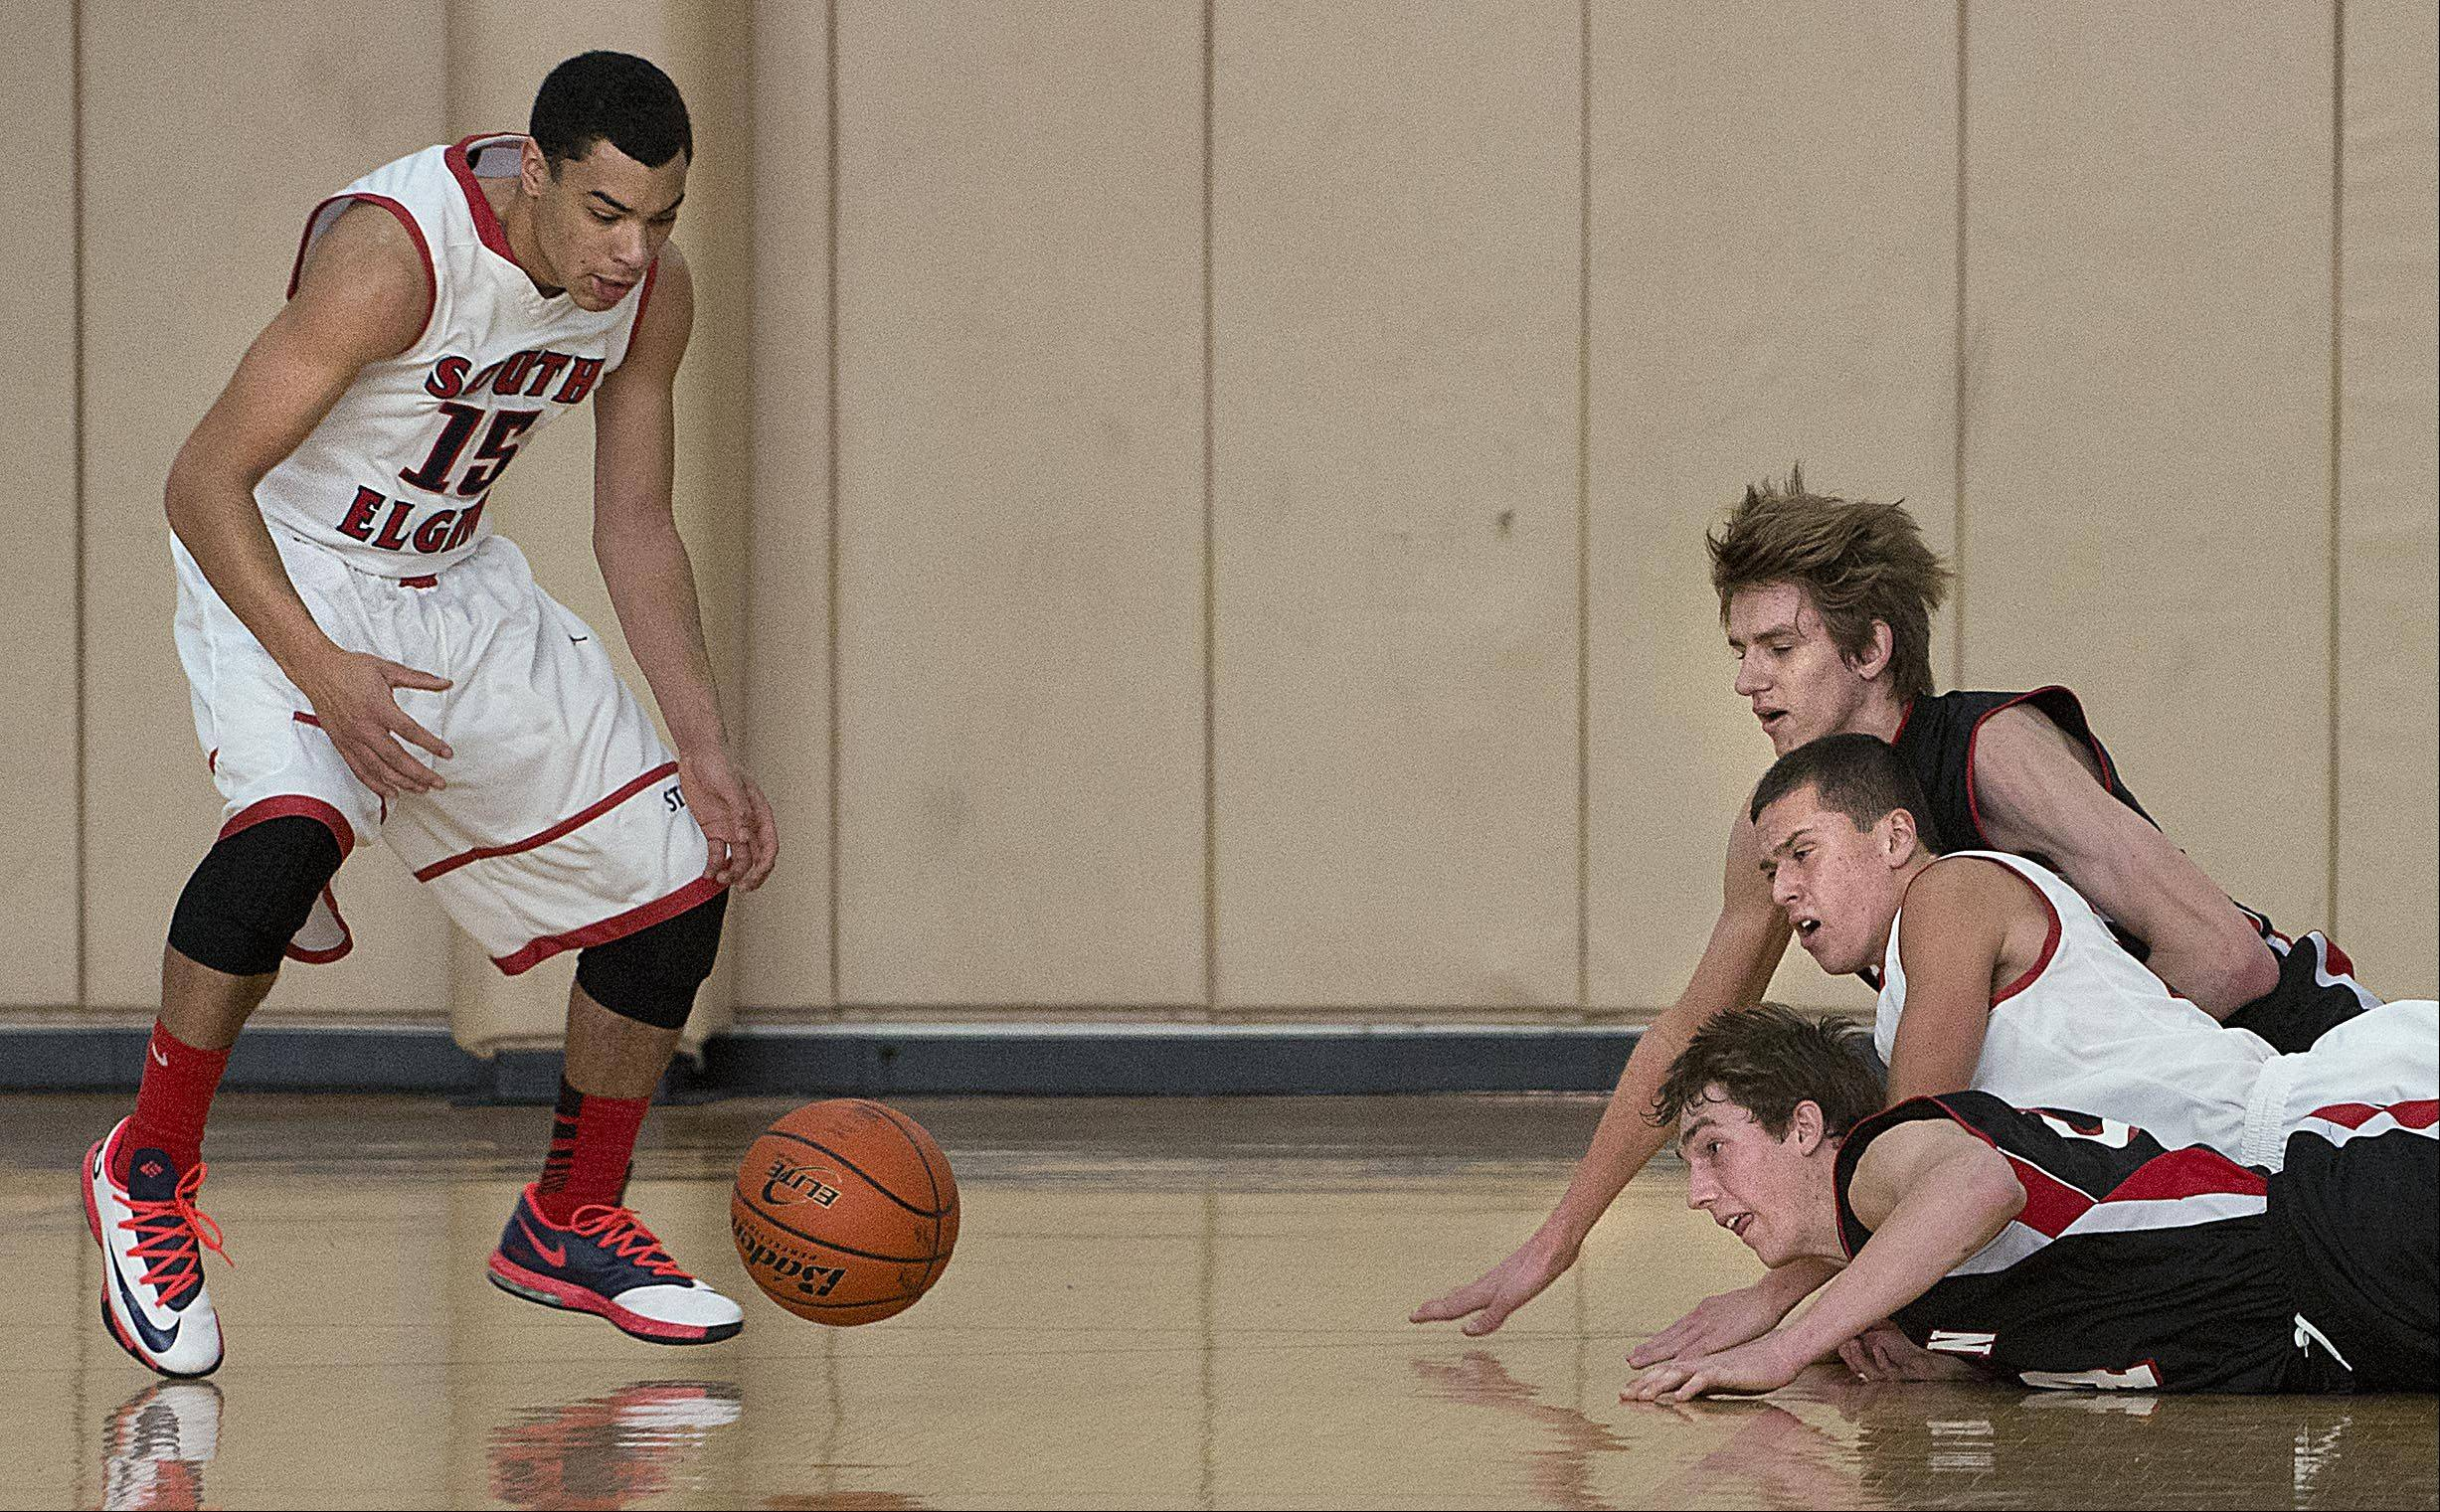 Barrington's Rapolas Ivanauskas and West McDonald and South Elgin's Matt McClure watch as South Elgin's Matthew Smith reaches for a loose ball.